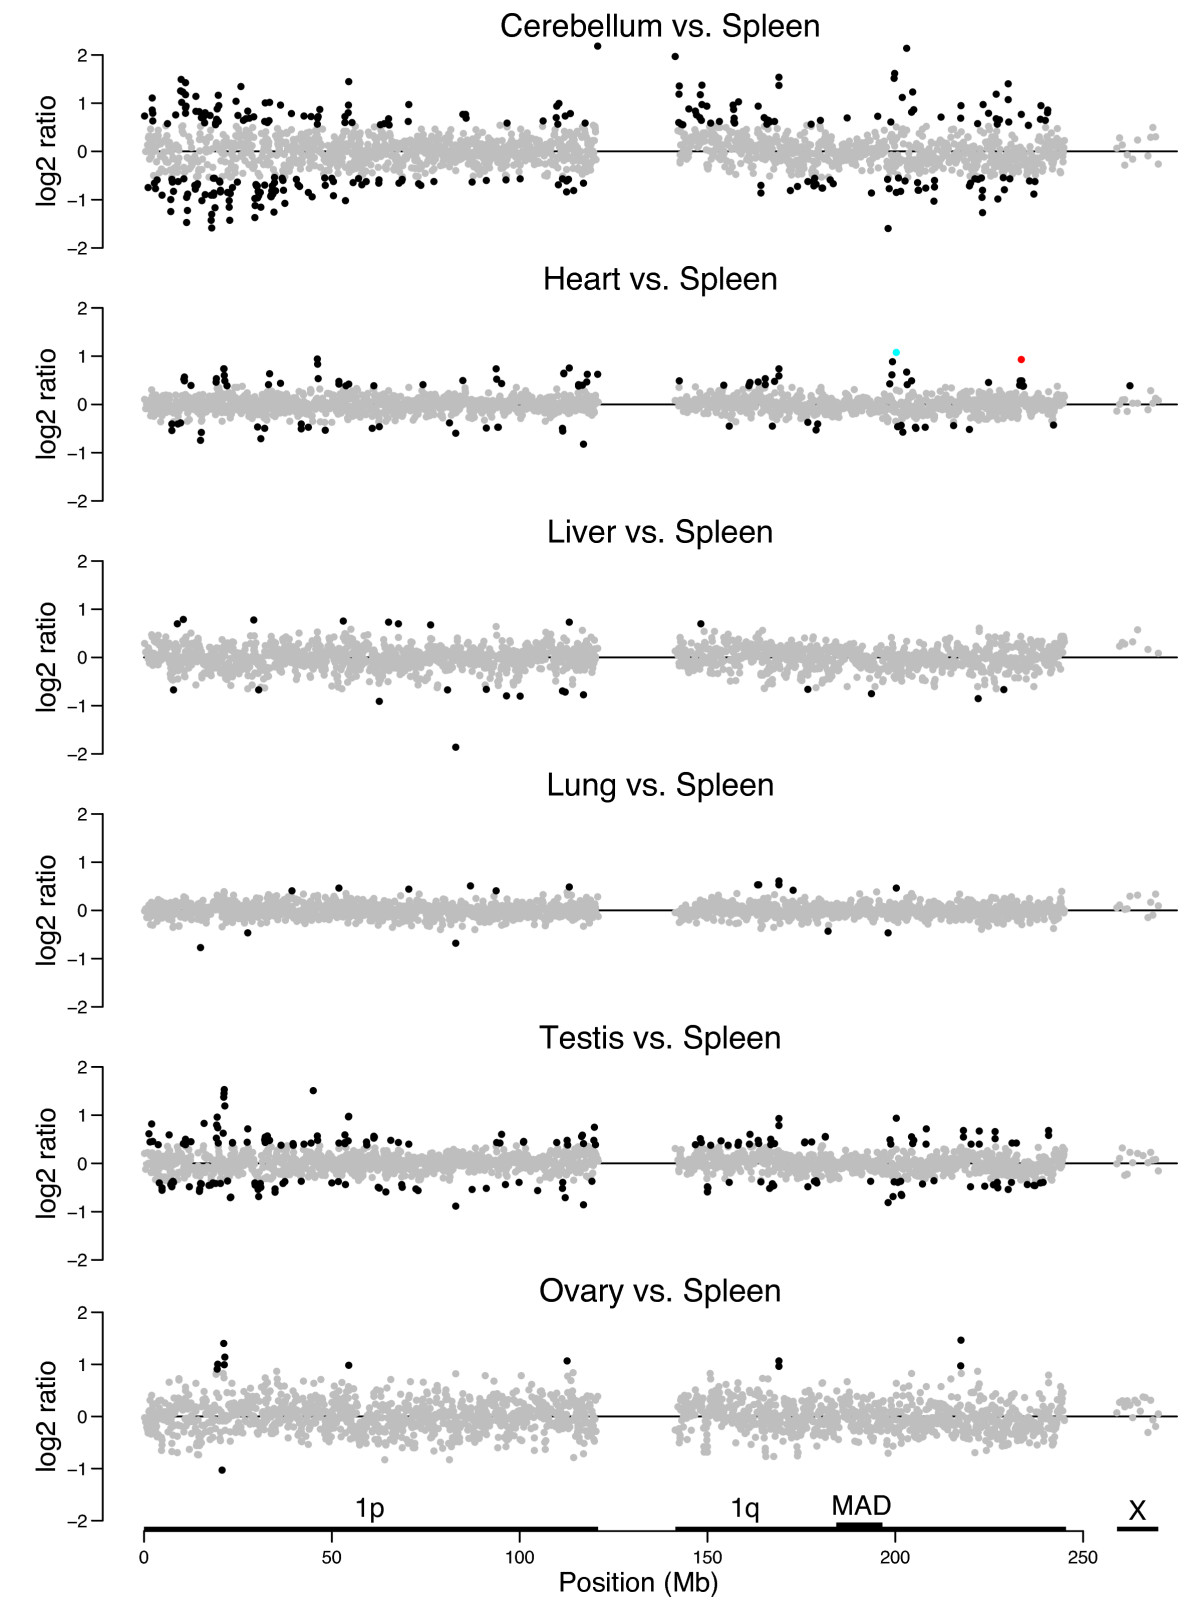 http://static-content.springer.com/image/art%3A10.1186%2F1756-8935-2-7/MediaObjects/13072_2008_Article_17_Fig4_HTML.jpg